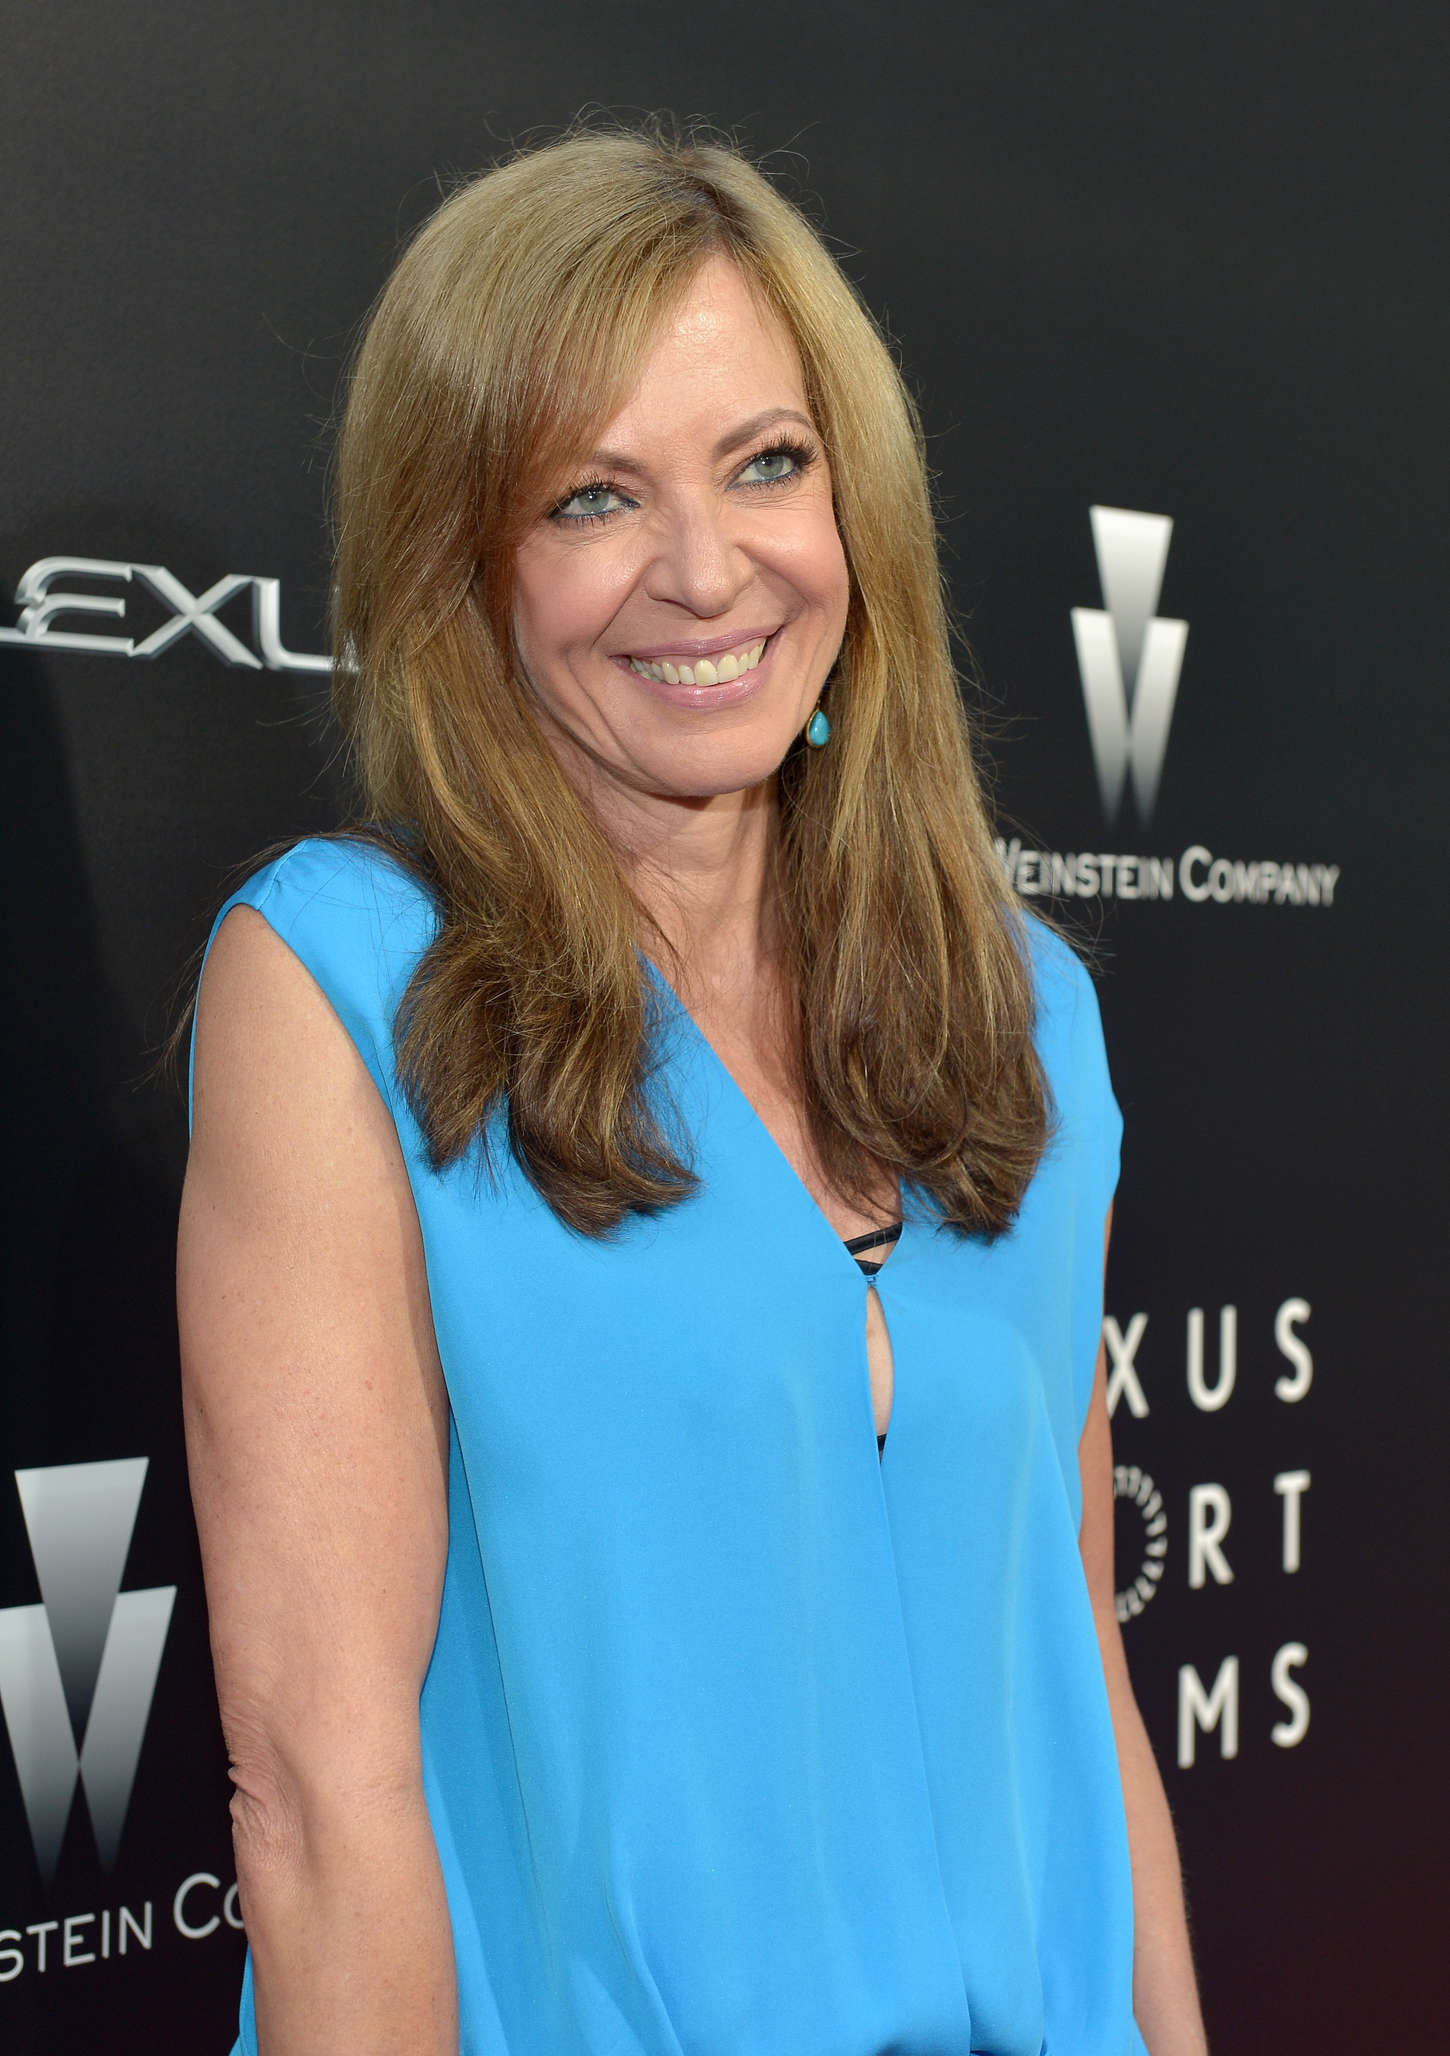 Allison Janney Lexus Short Films Premiere in Los Angeles